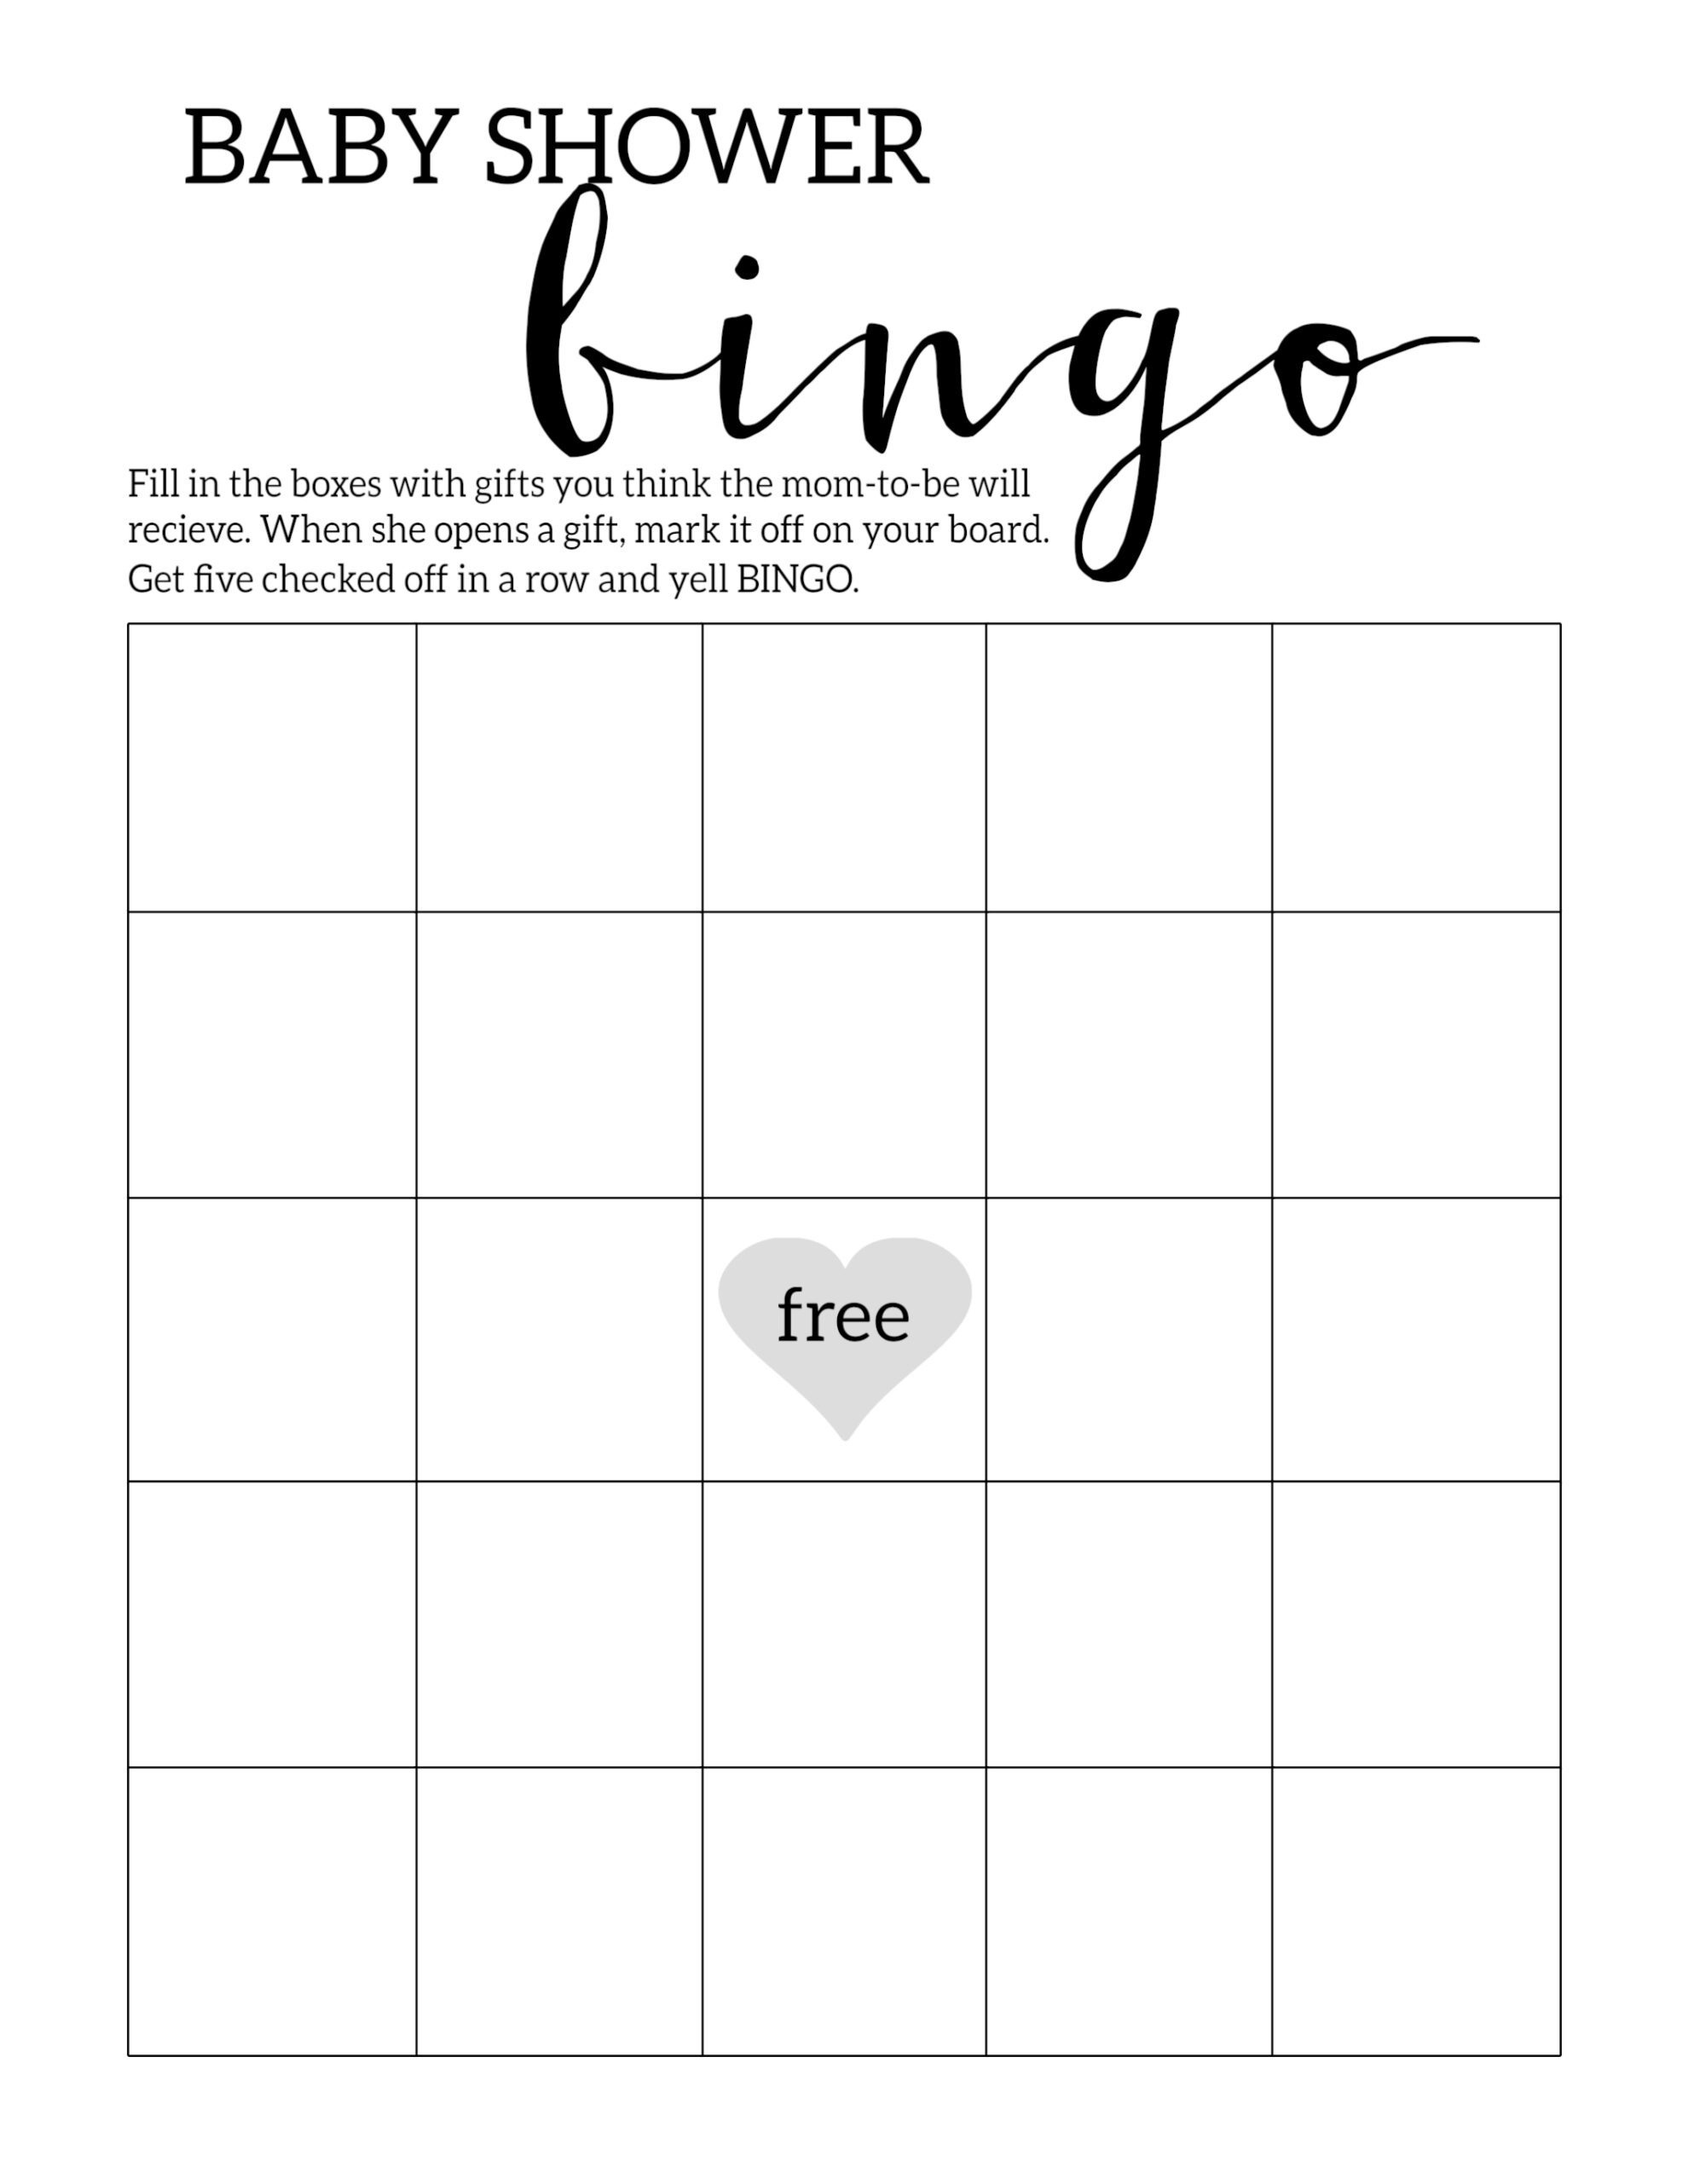 Baby Shower Bingo Printable Cards Template - Paper Trail Design - Baby Bingo Free Printable